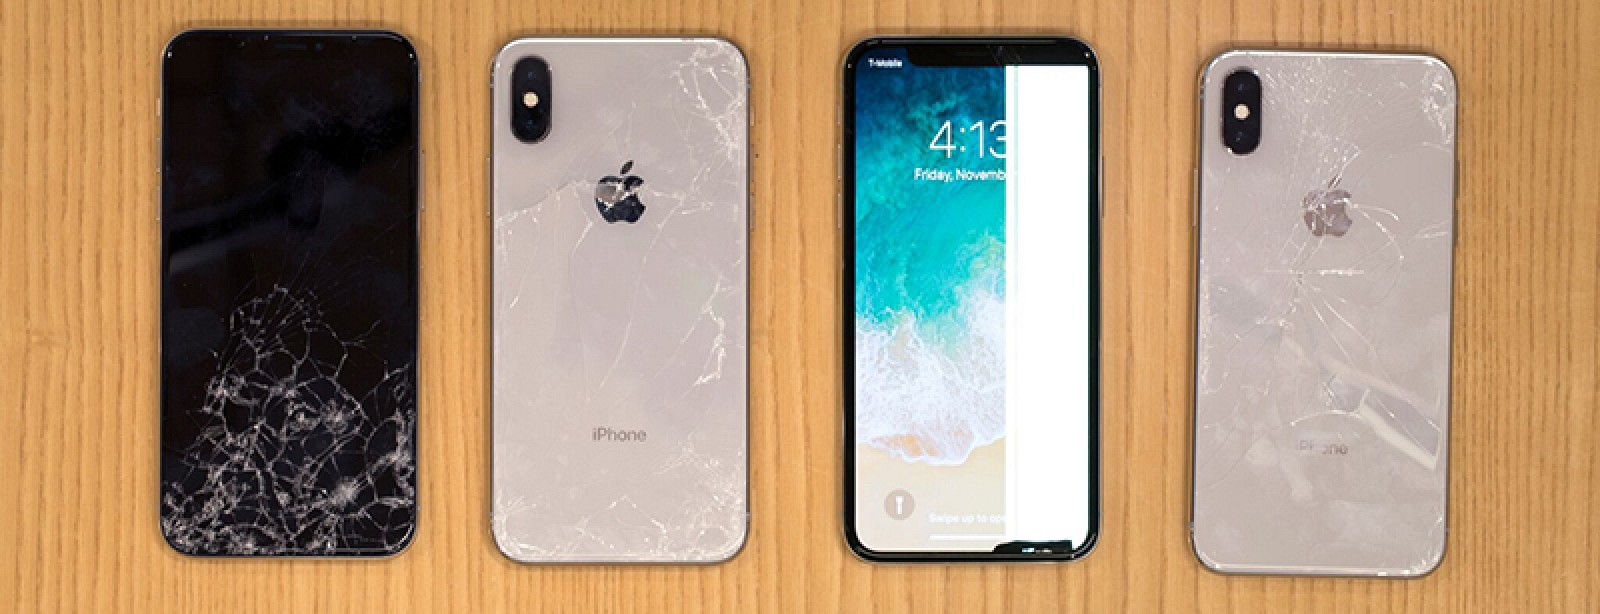 Image Result For Apple Iphone Broken Home Button